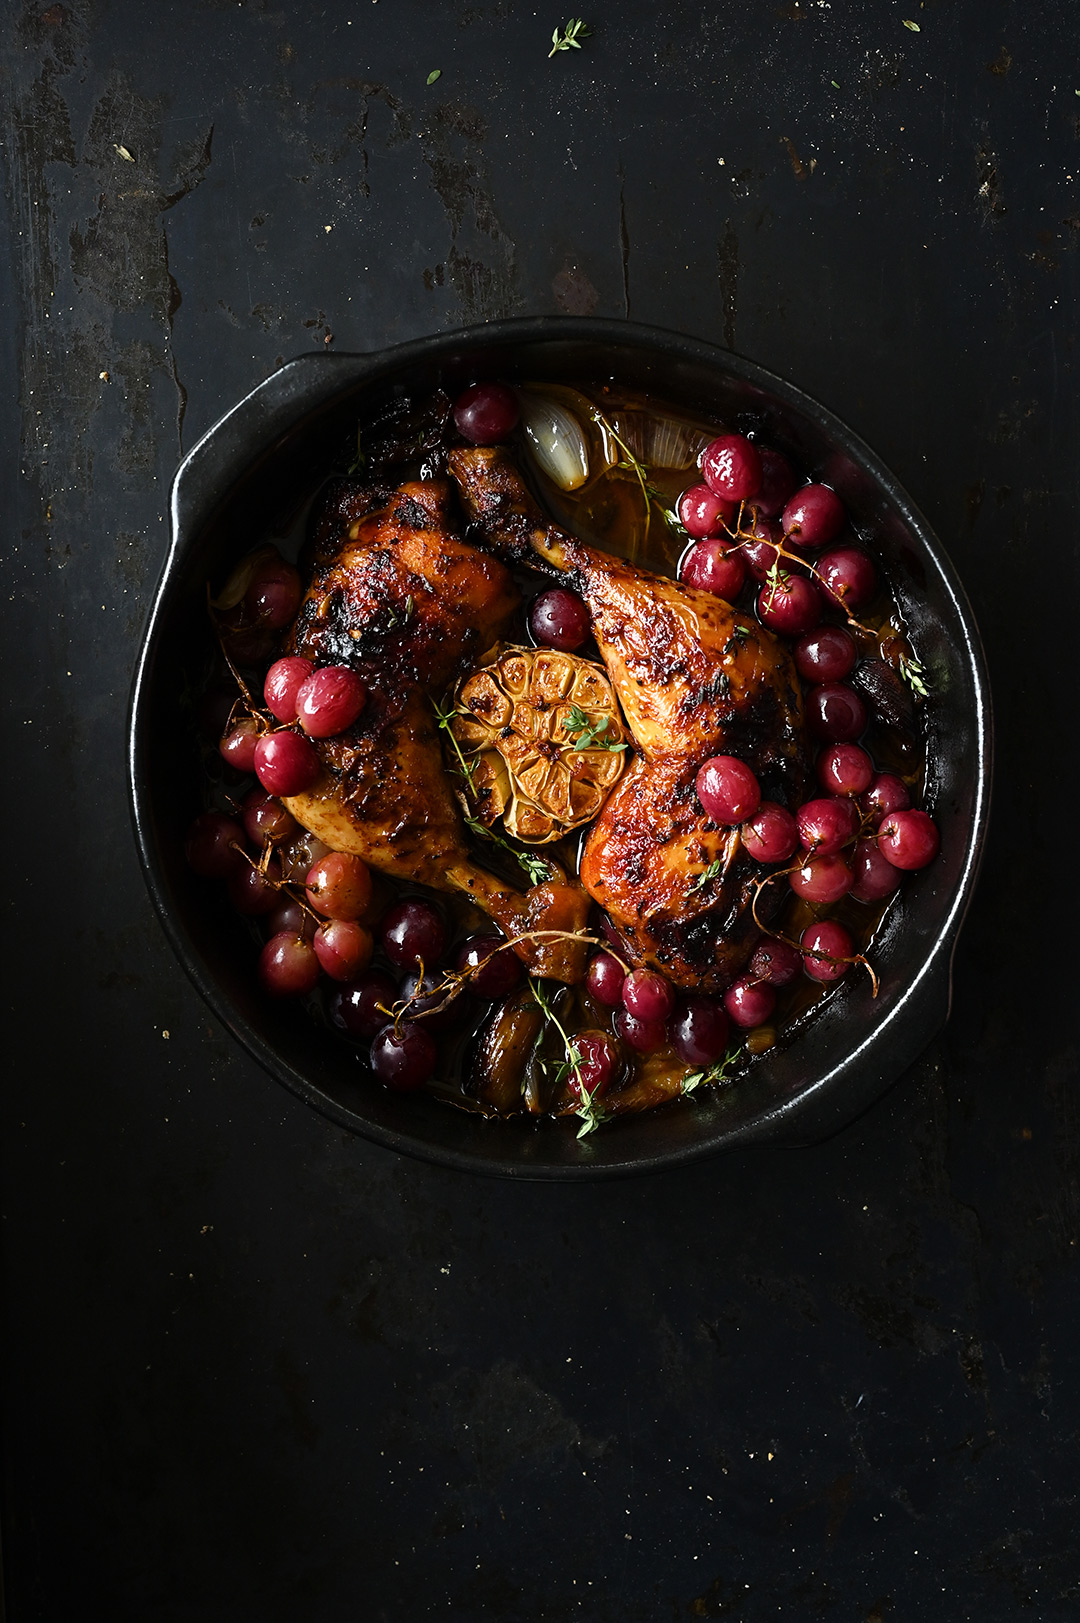 serving dumplings | Roast chicken legs with garlic and grapes